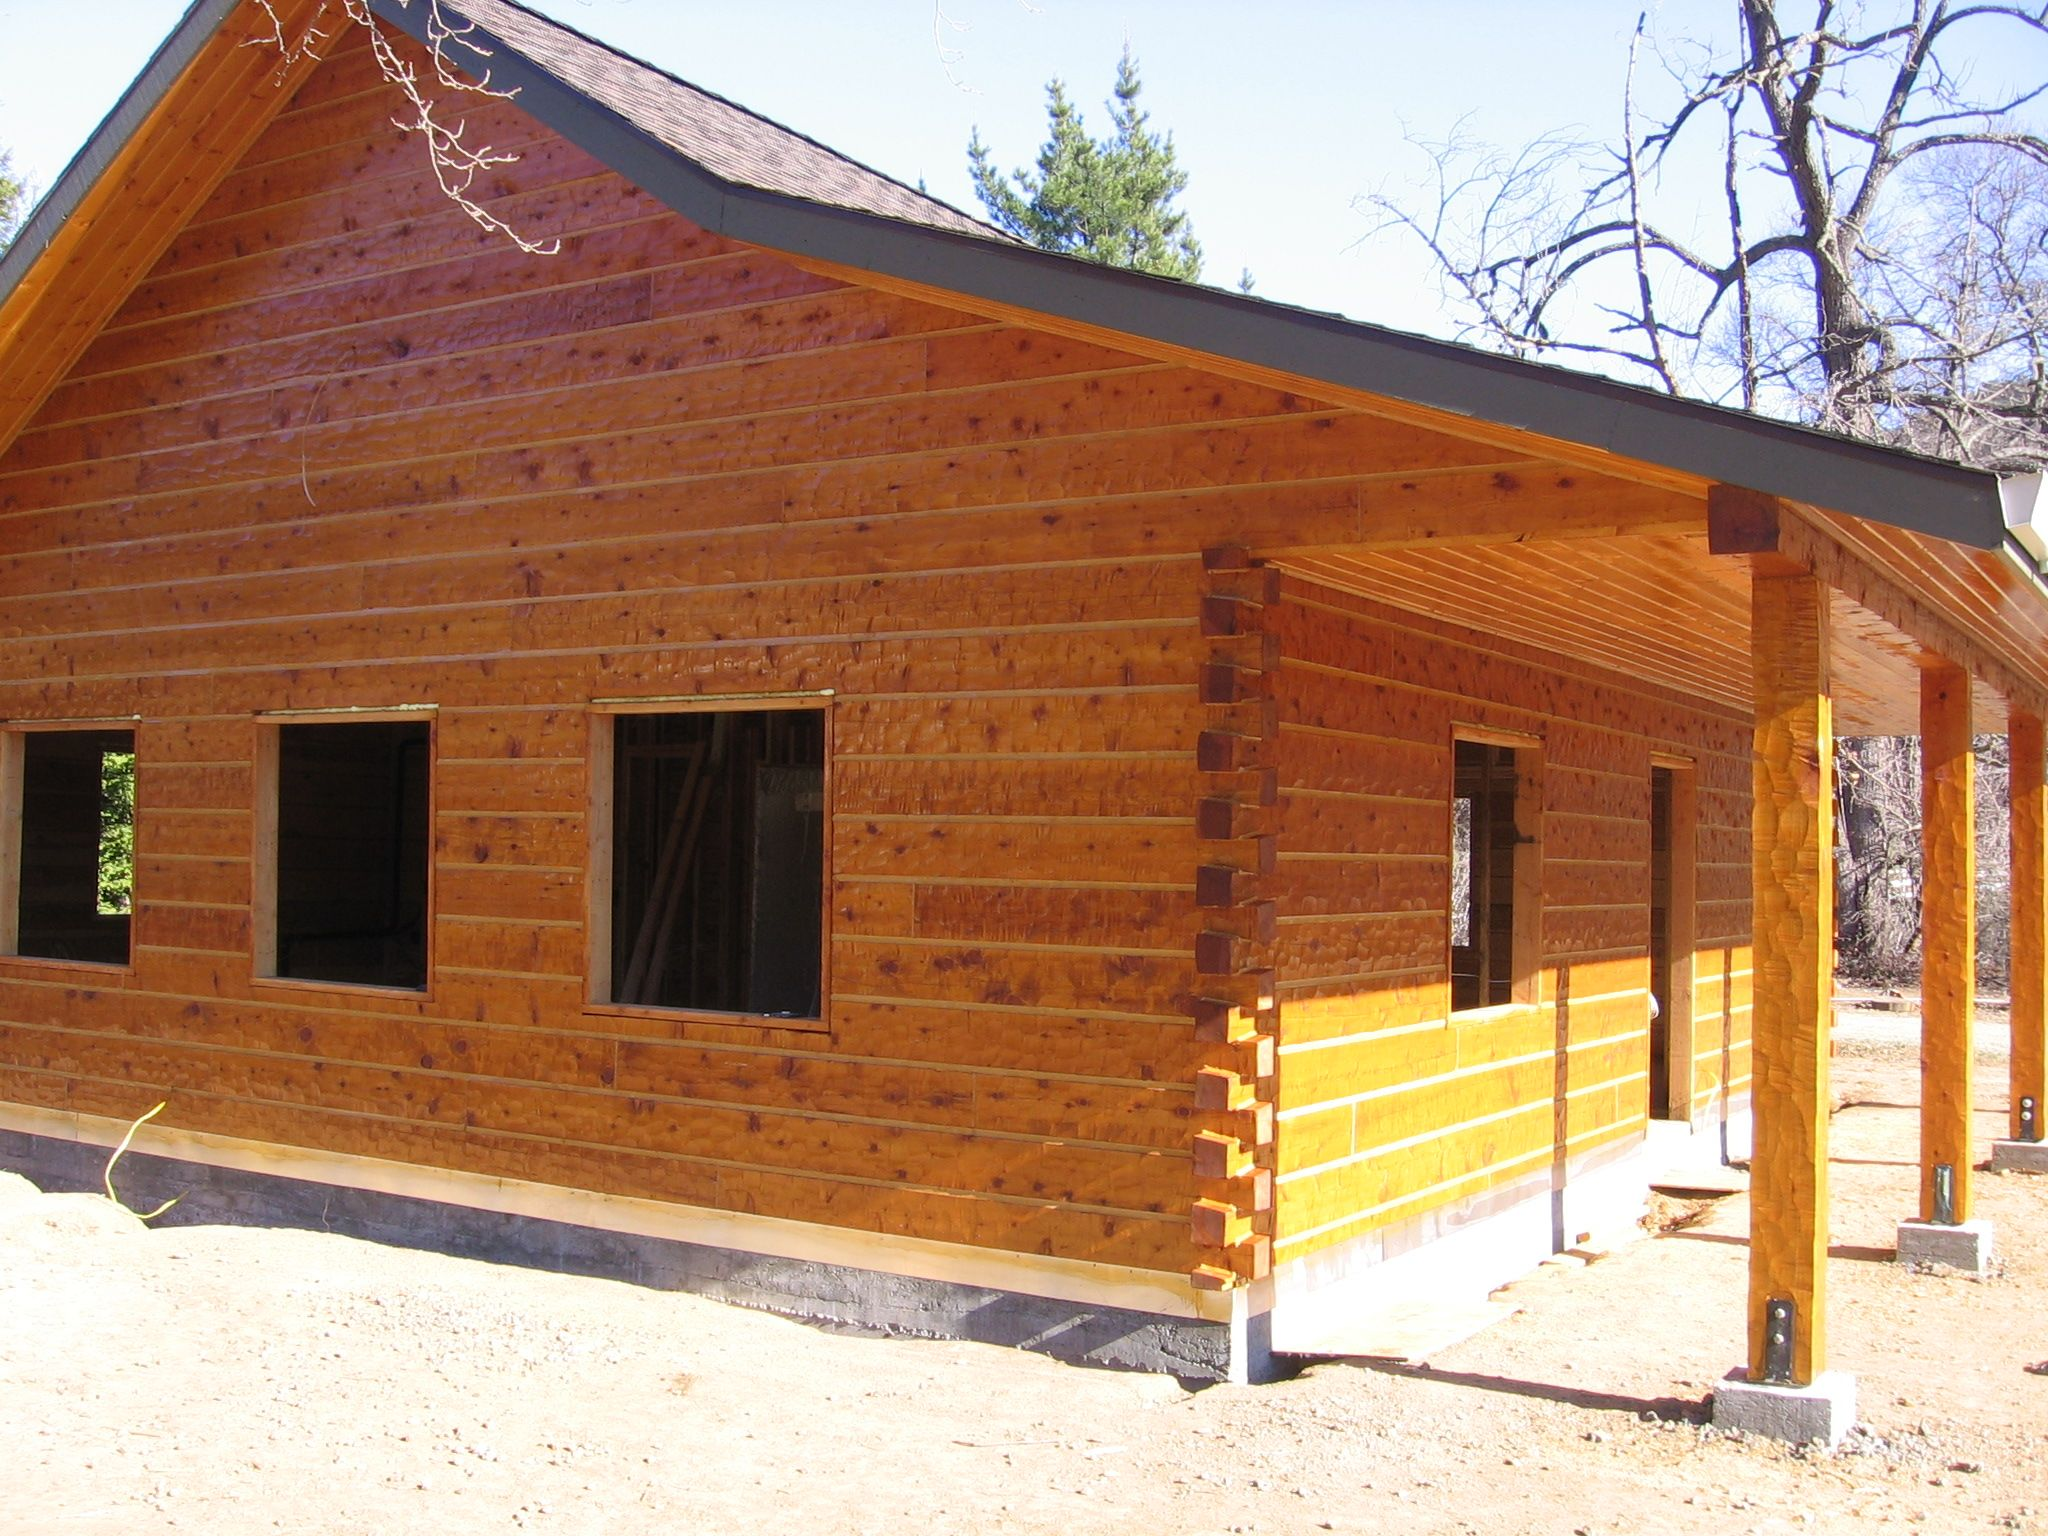 California Panelized Homes Are Affordable Pre Built Home Kits Easy To Assemble With Panelized Walls Prebuilt Pre Built Homes Pre Built Cabins Log Home Prices